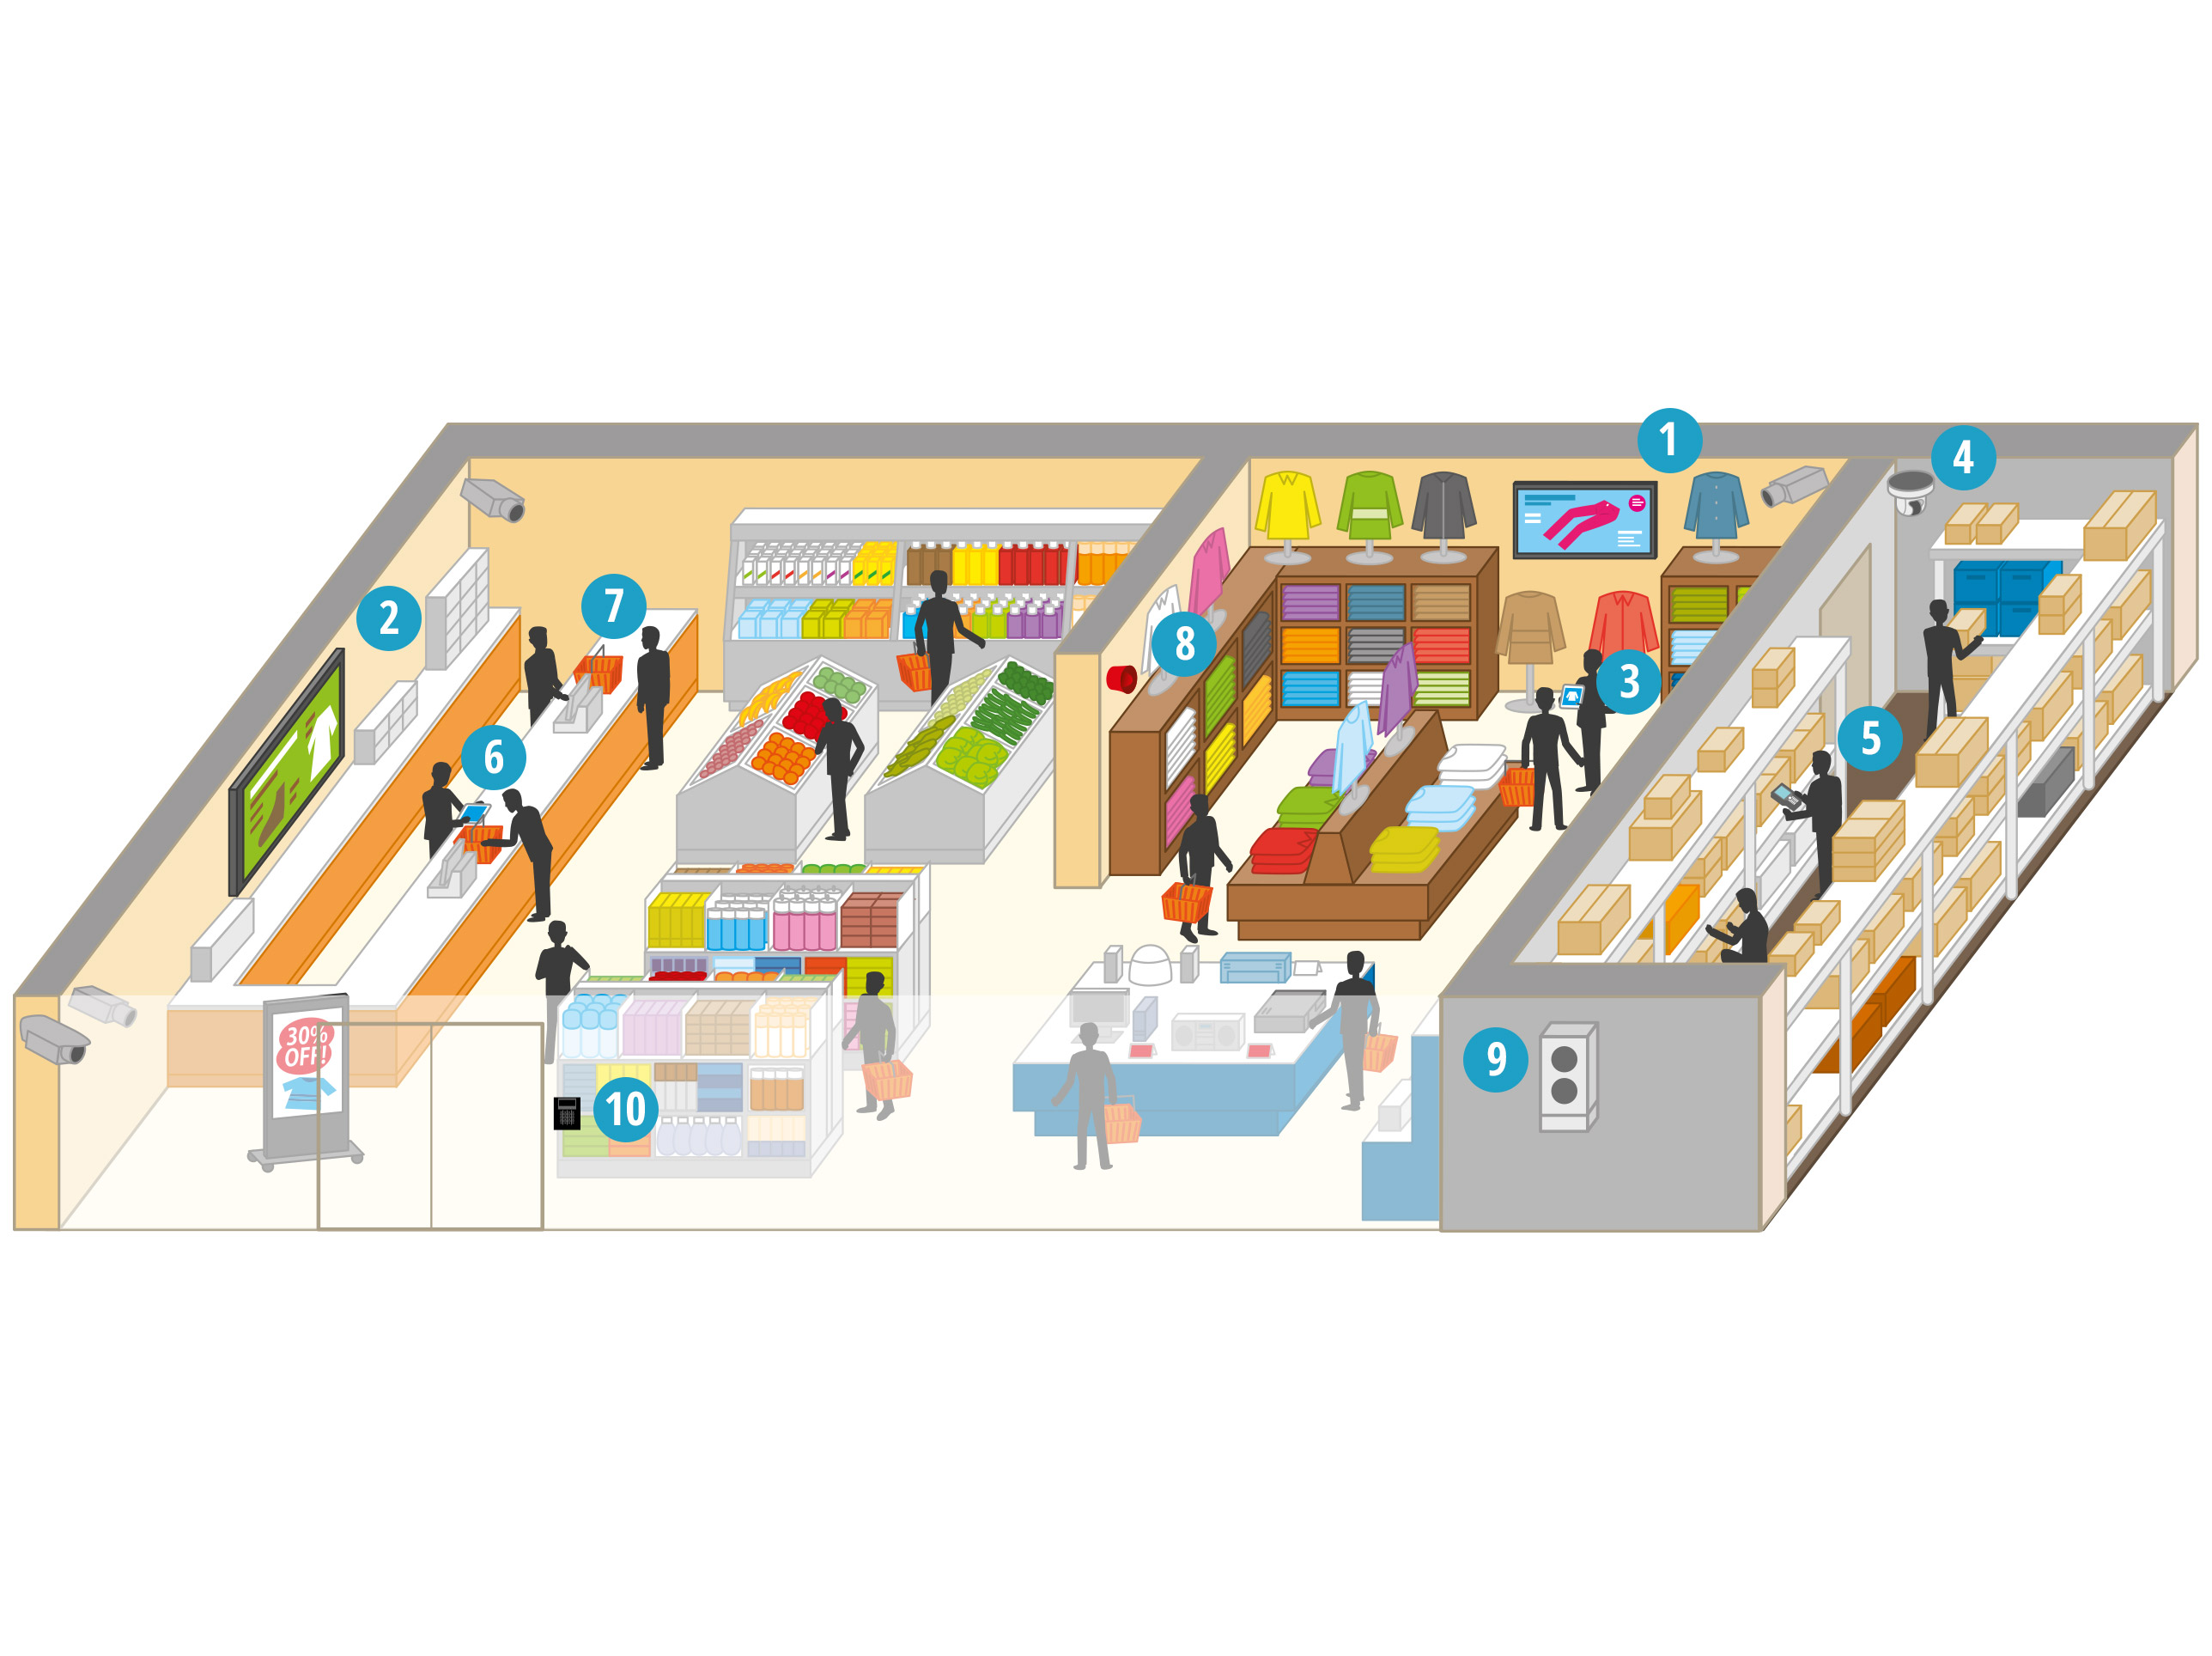 How do Panasonic solutions support the retail outlet sector?